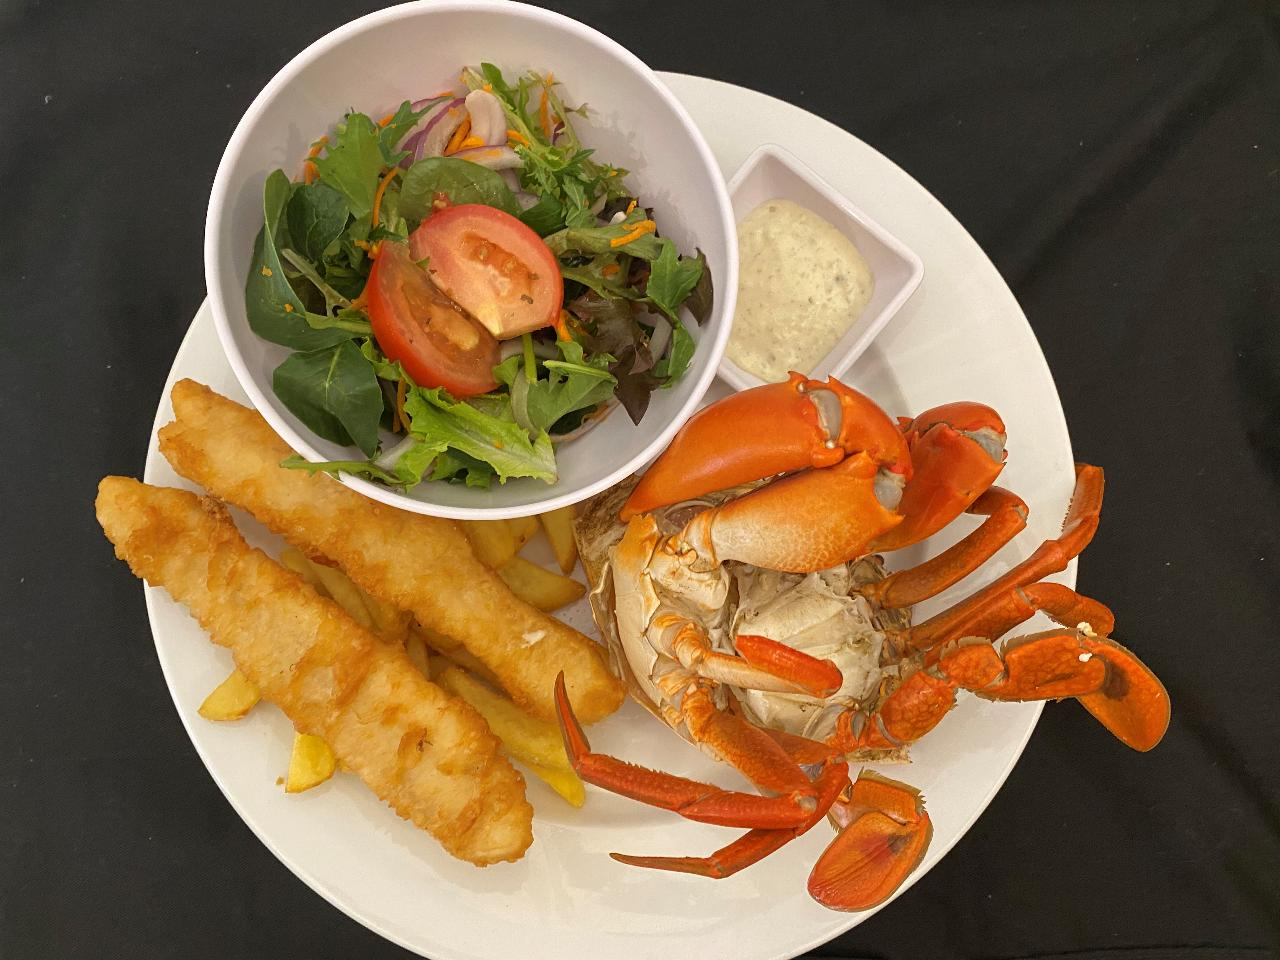 Tour + Seafood Platter Lunch